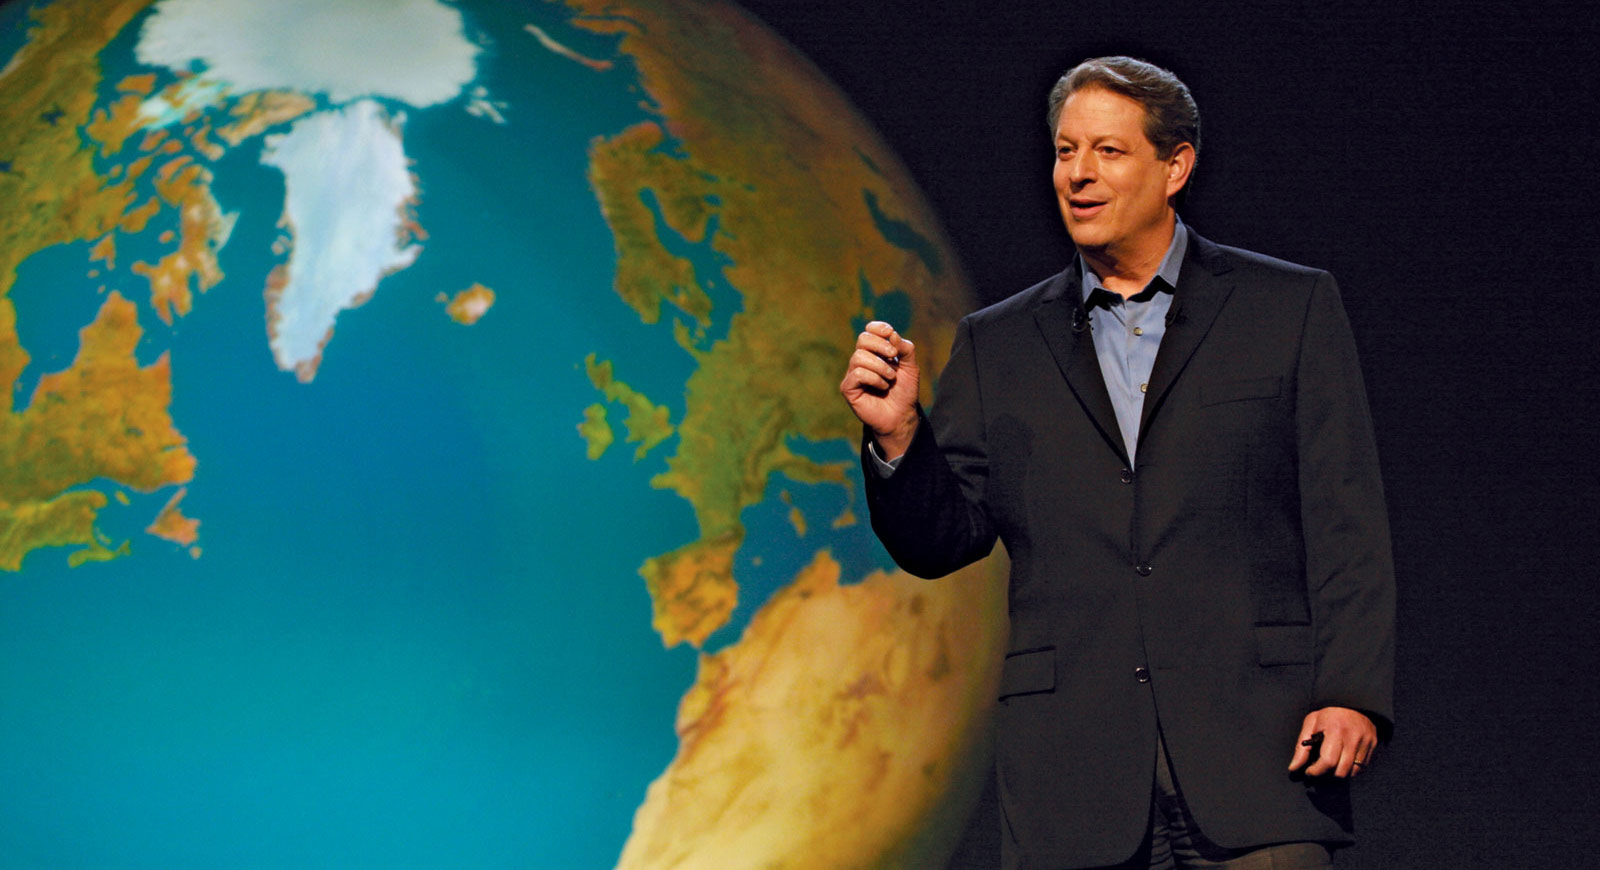 Al Gore in David Guggenheim's An Inconvenient Truth